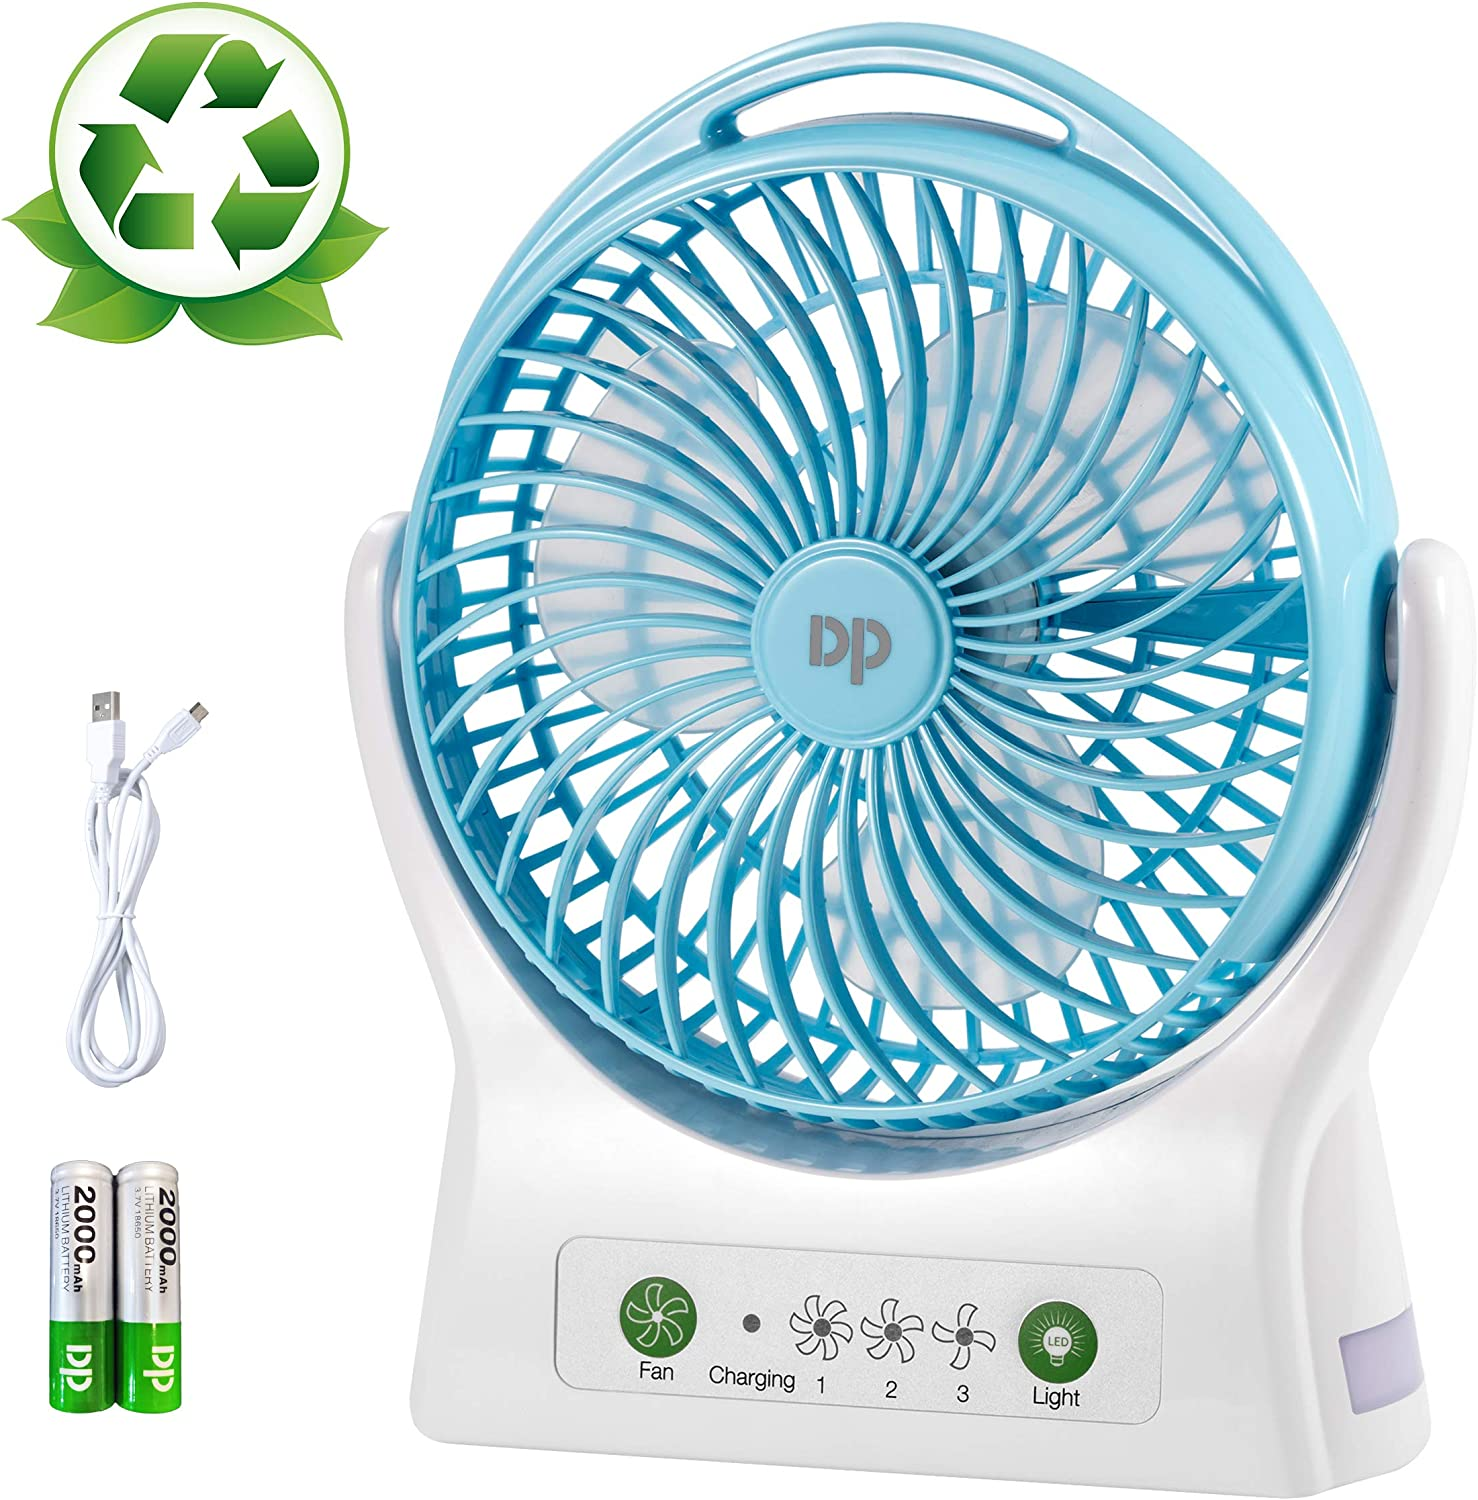 DP USB Personal Battery Operated Desk Fan, 4000mAh Rechargeable Battery (Included), 3 Speeds, 330 Degree Rotation, Ultra Quiet Cooling Table Fan with Night Light for Home and Office